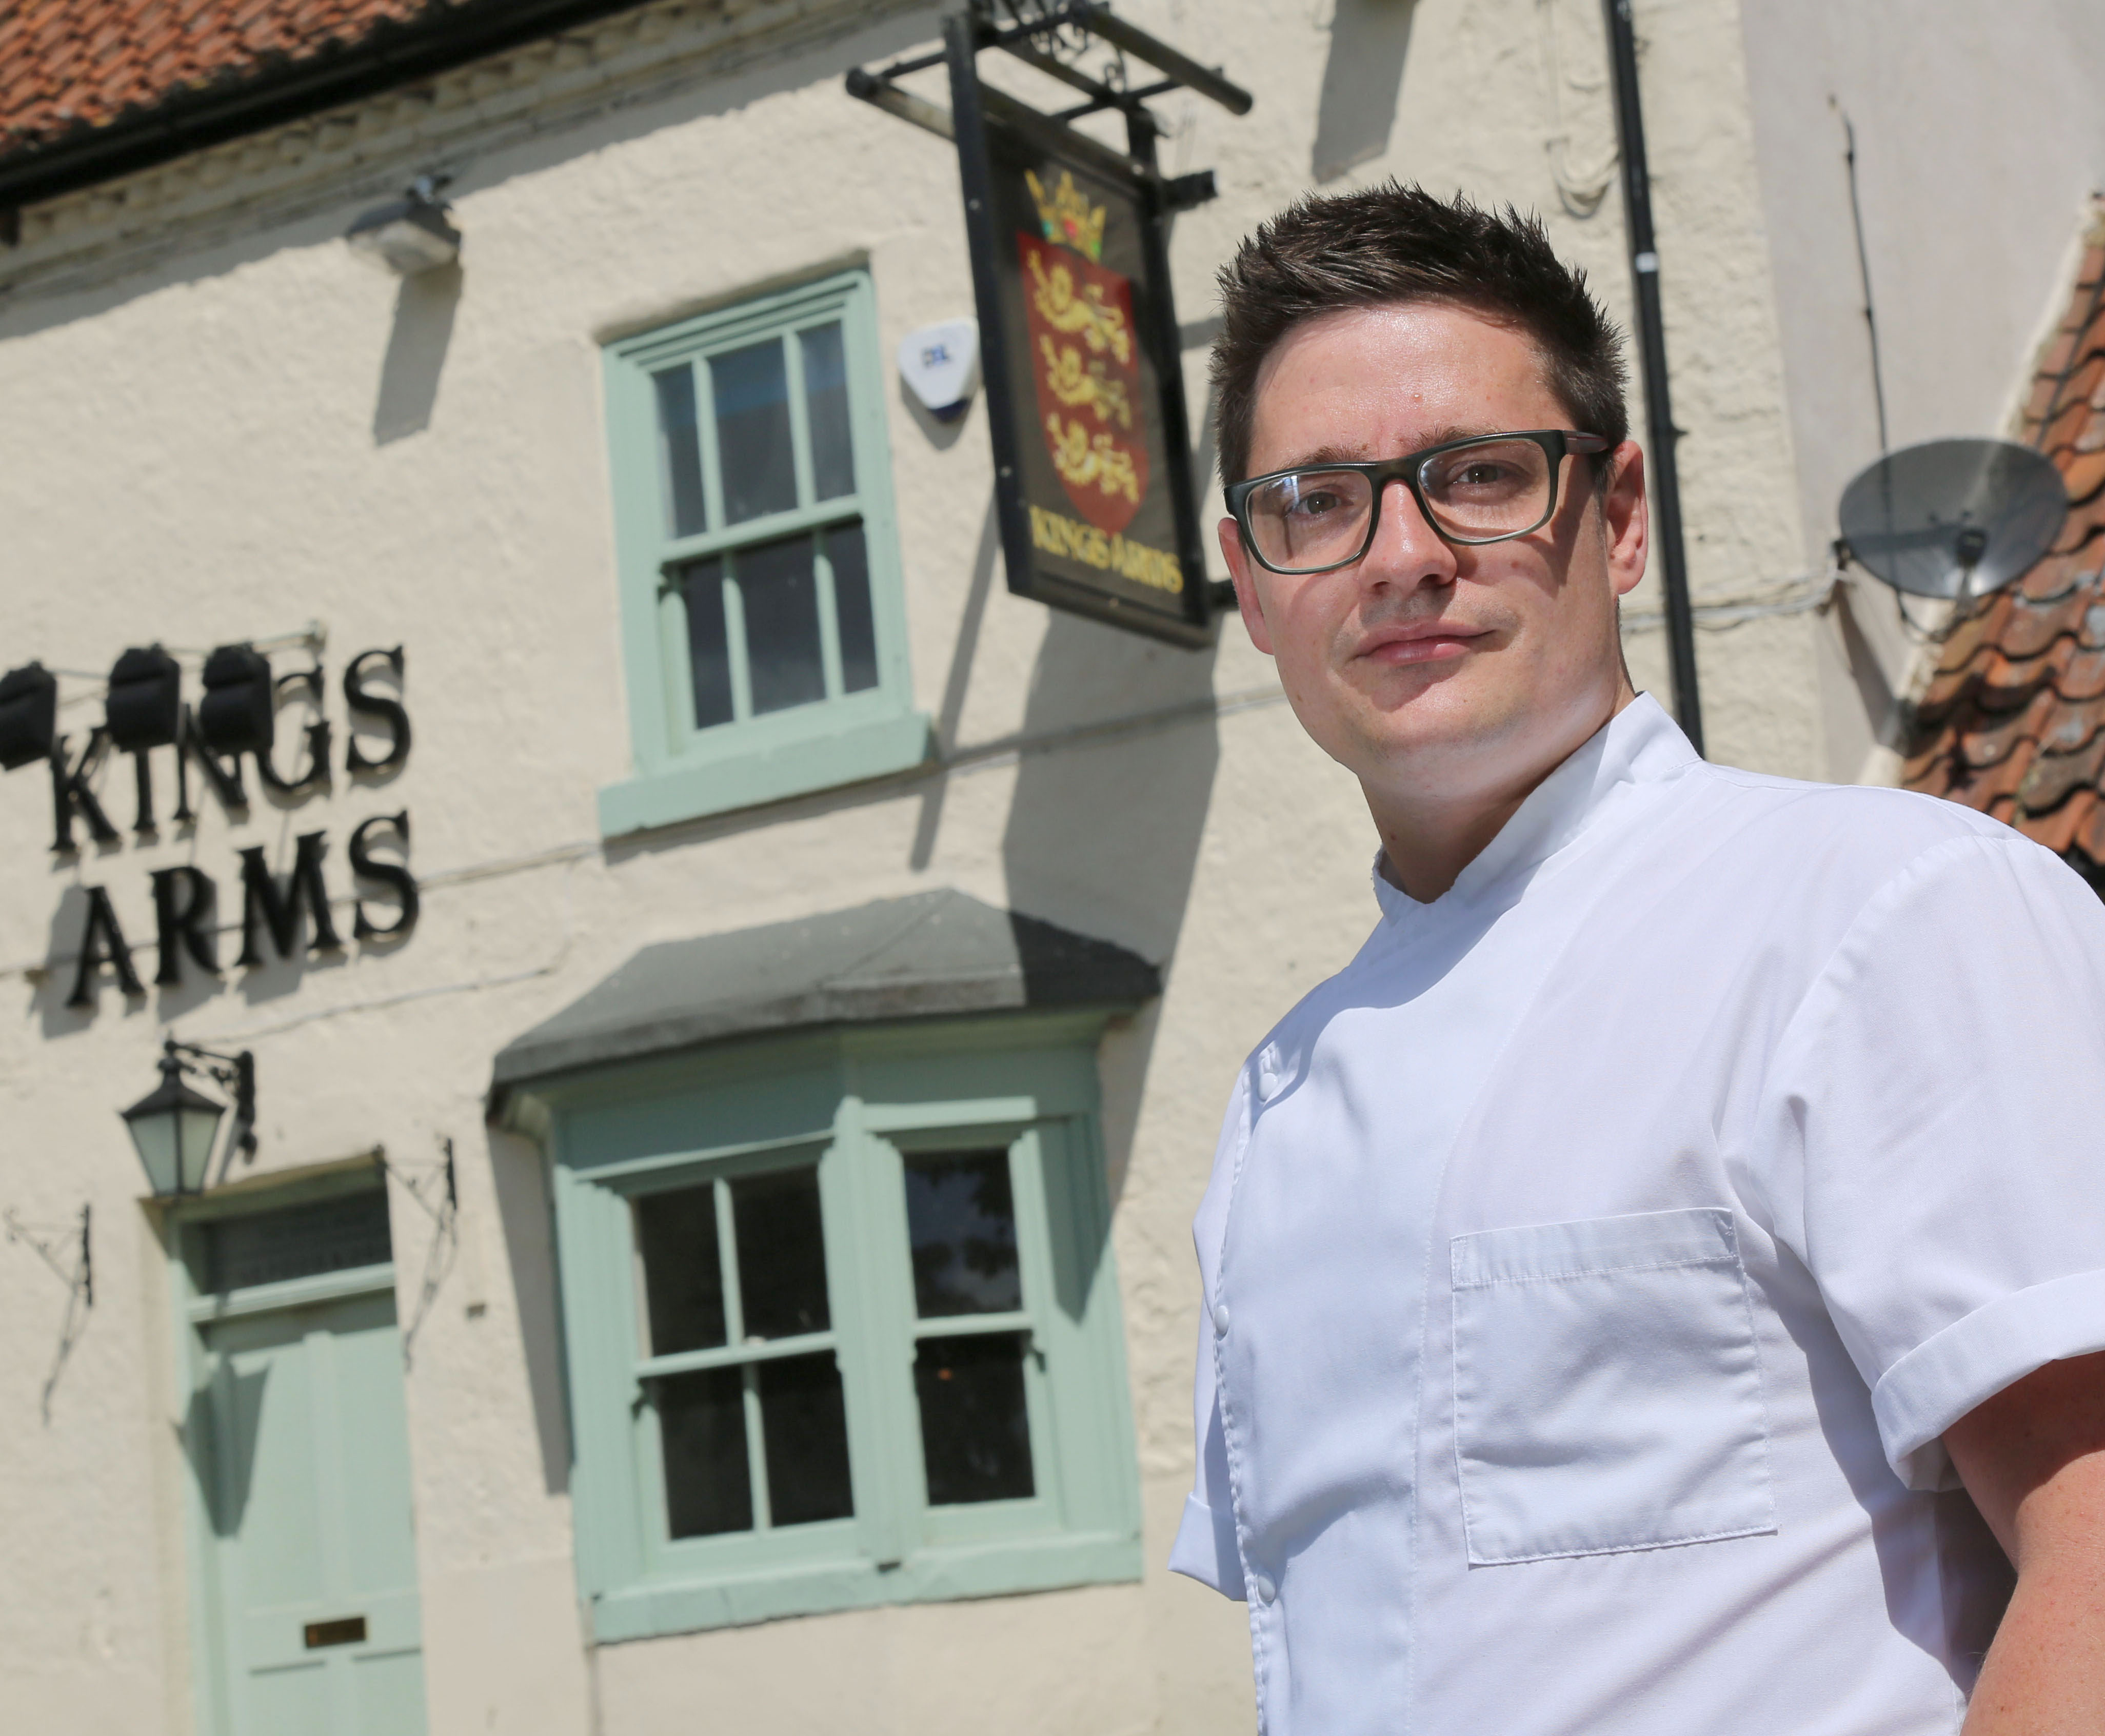 King's Arms Re-opens